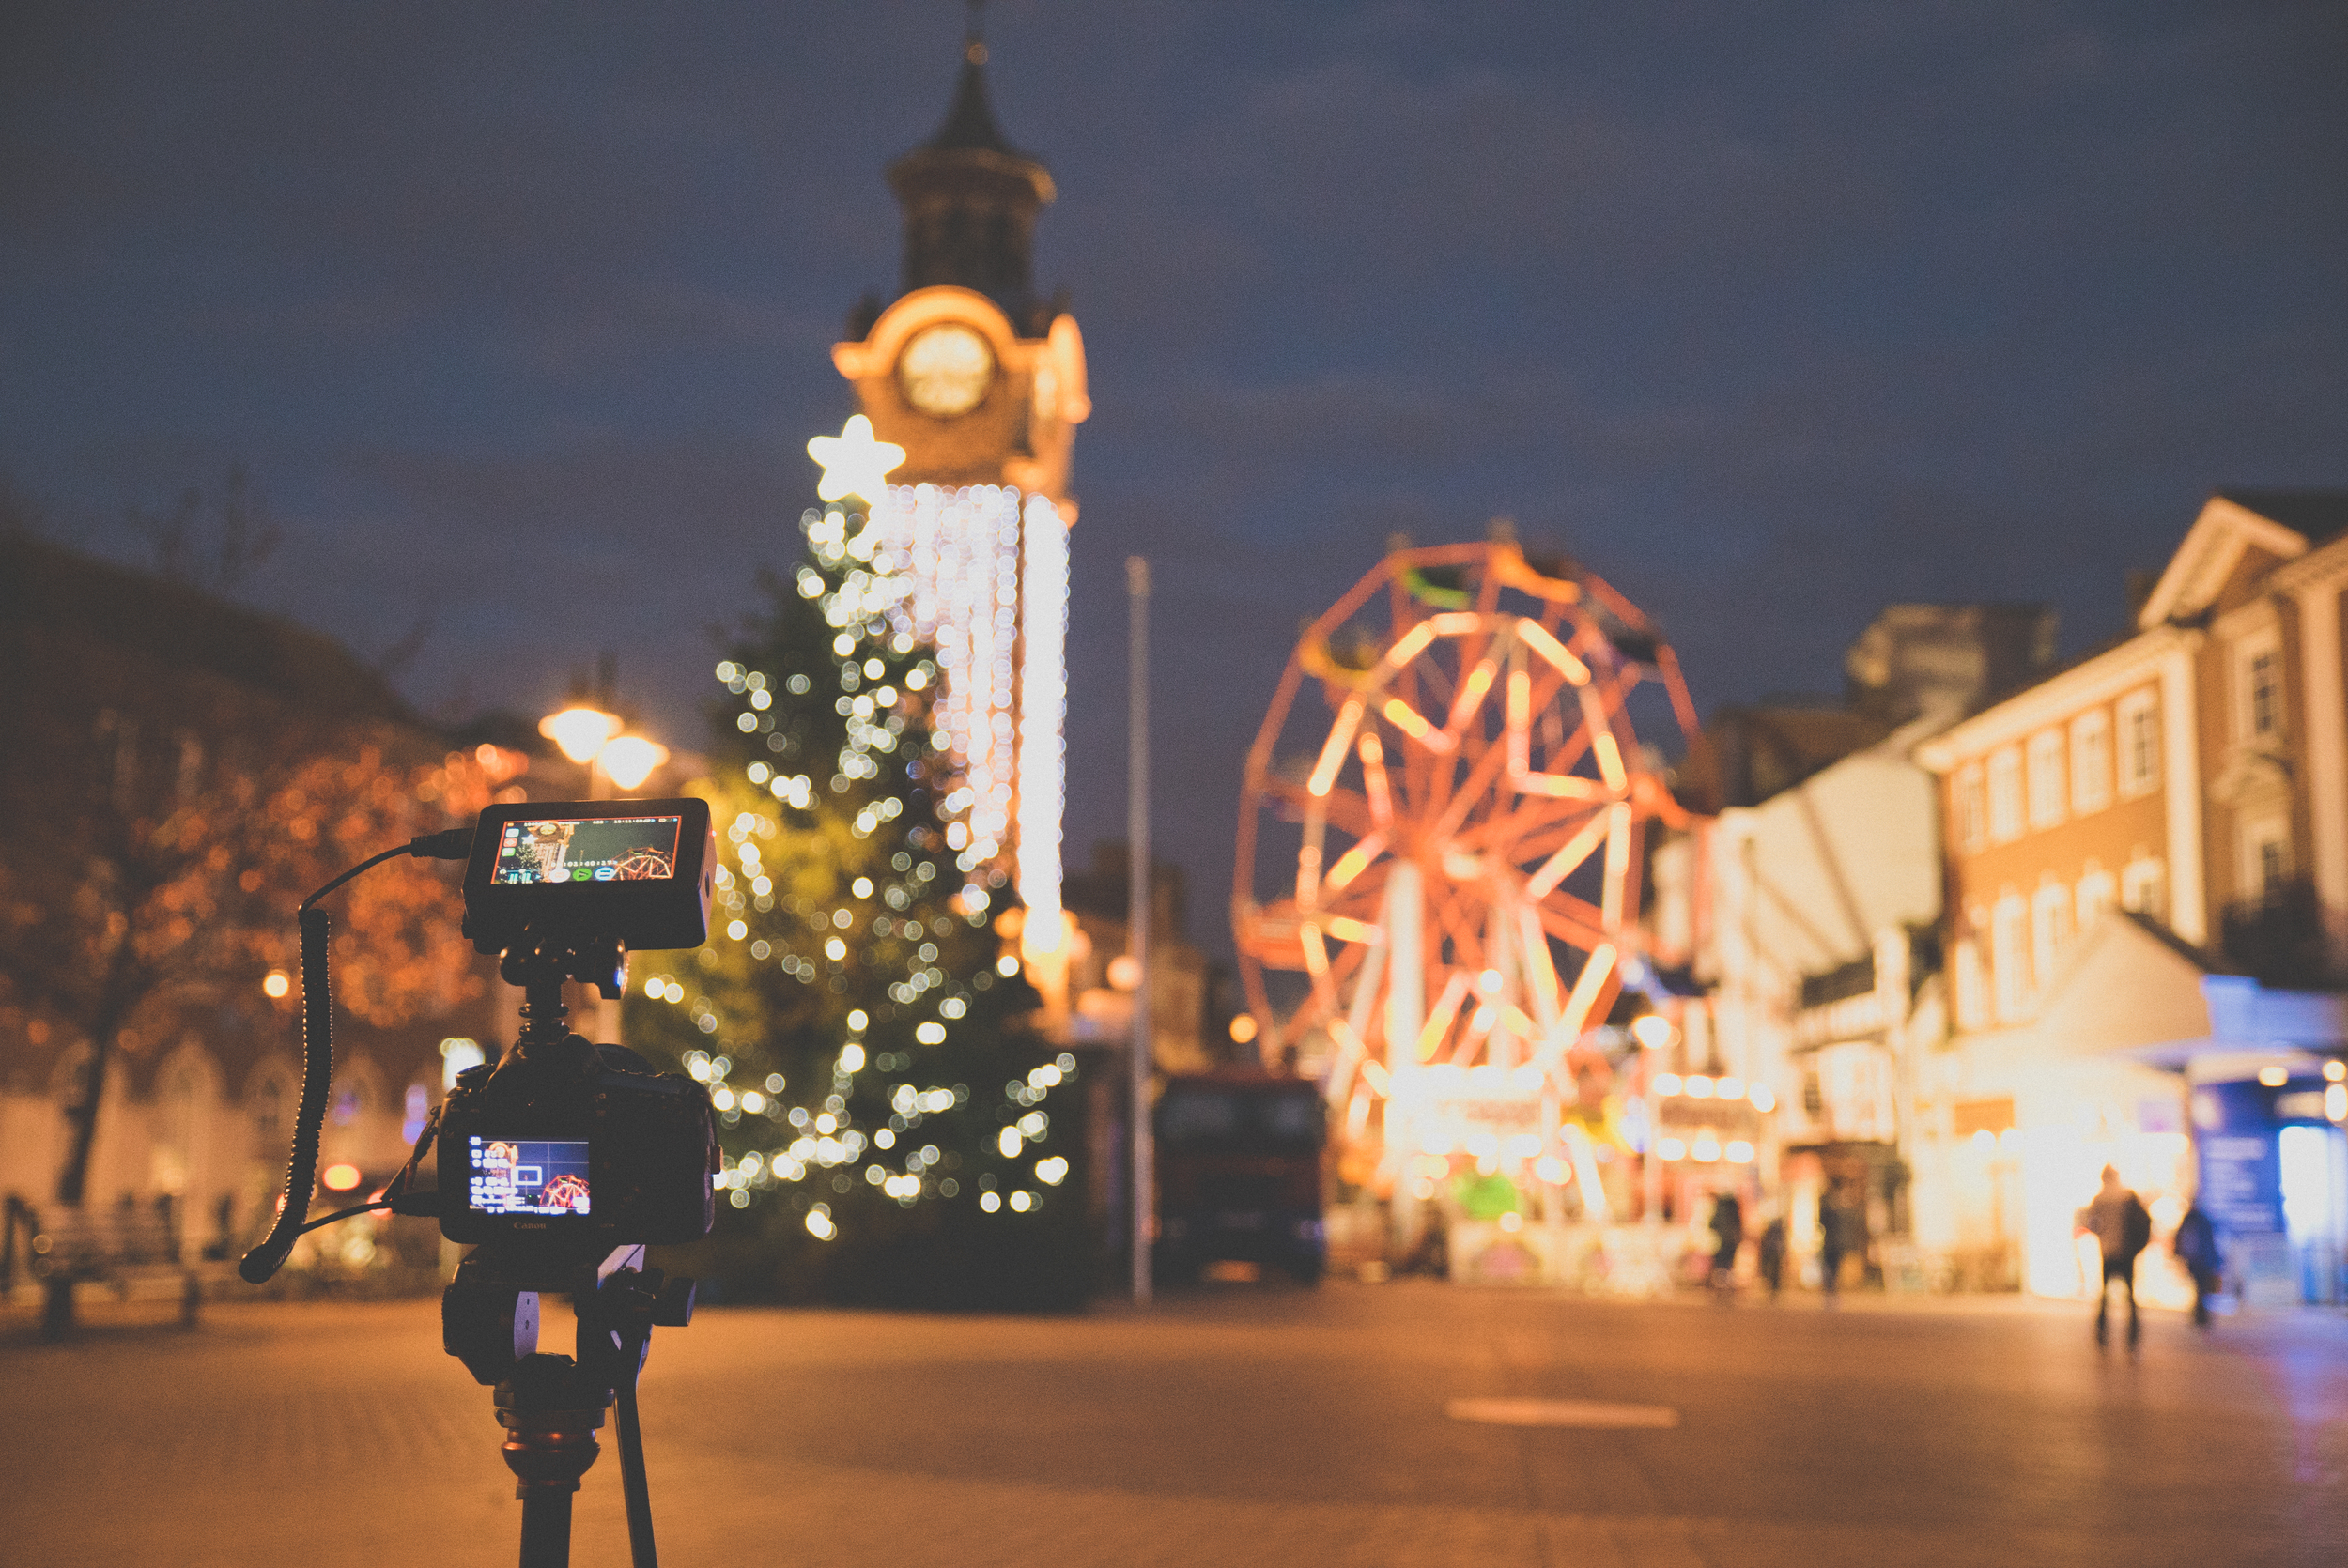 Wonderful Christmas Epsom town centre - 5D and Ninja Blade on the Manfrotto tripod